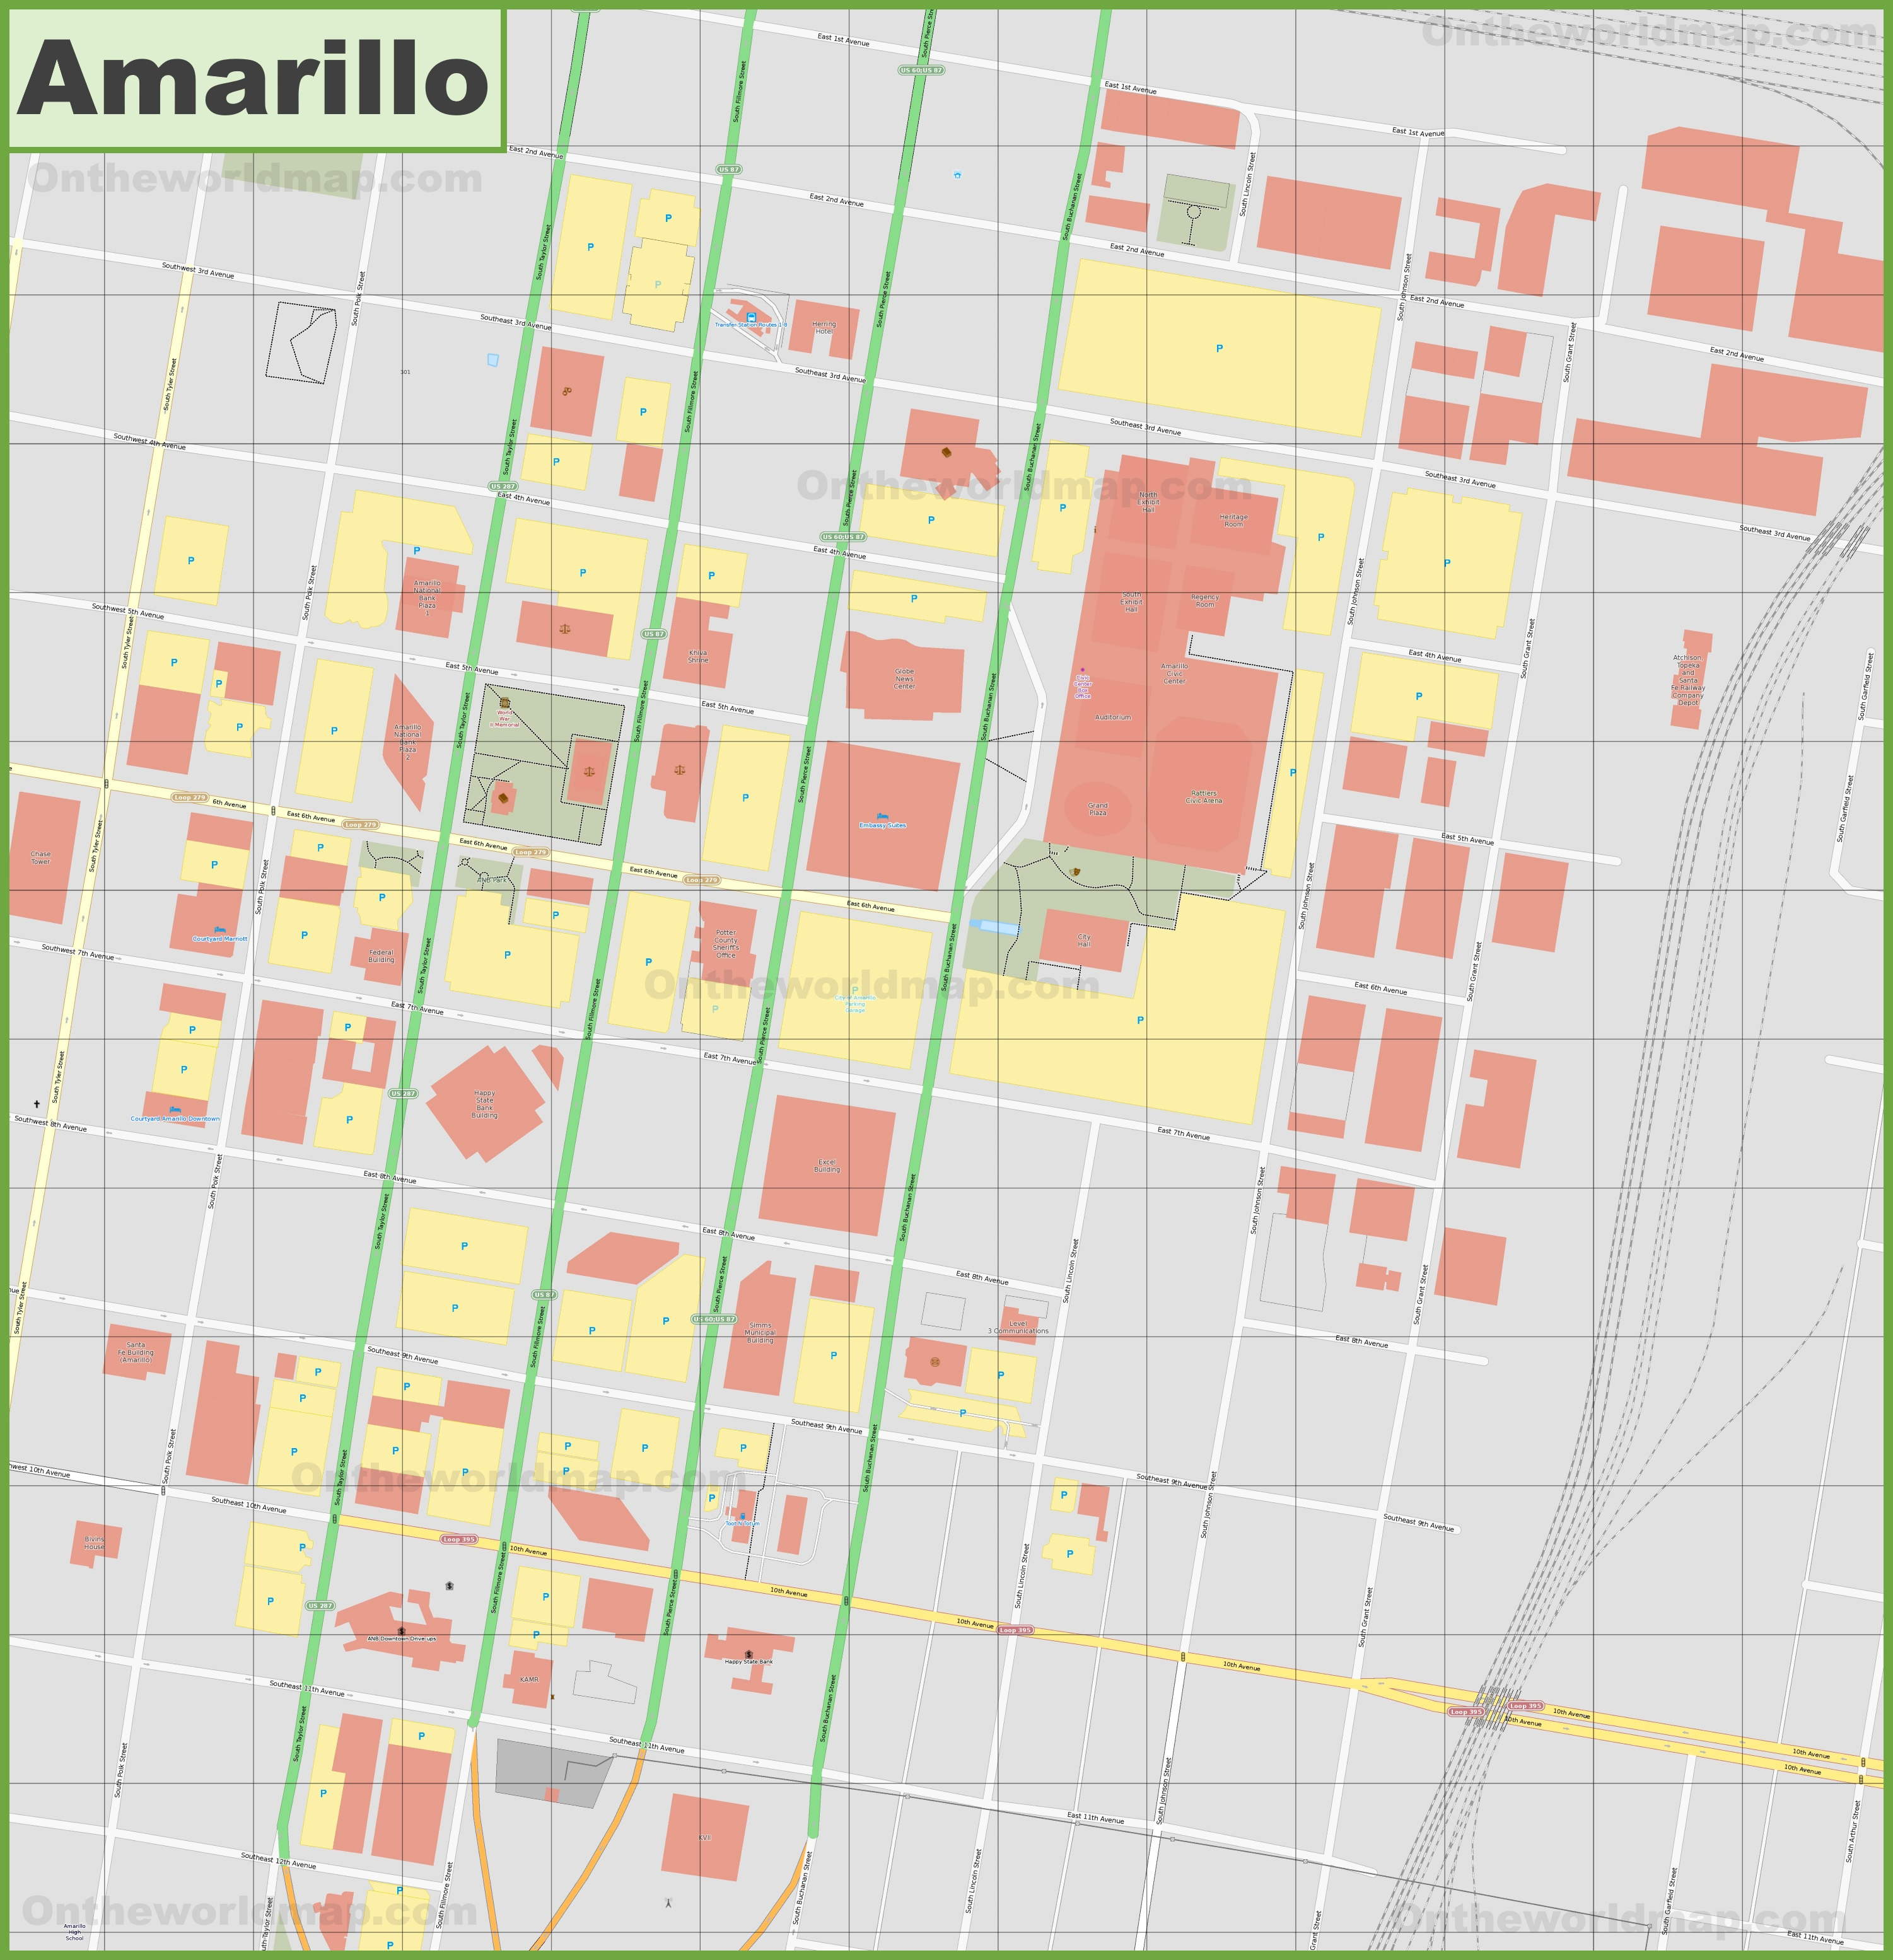 Amarillo downtown map